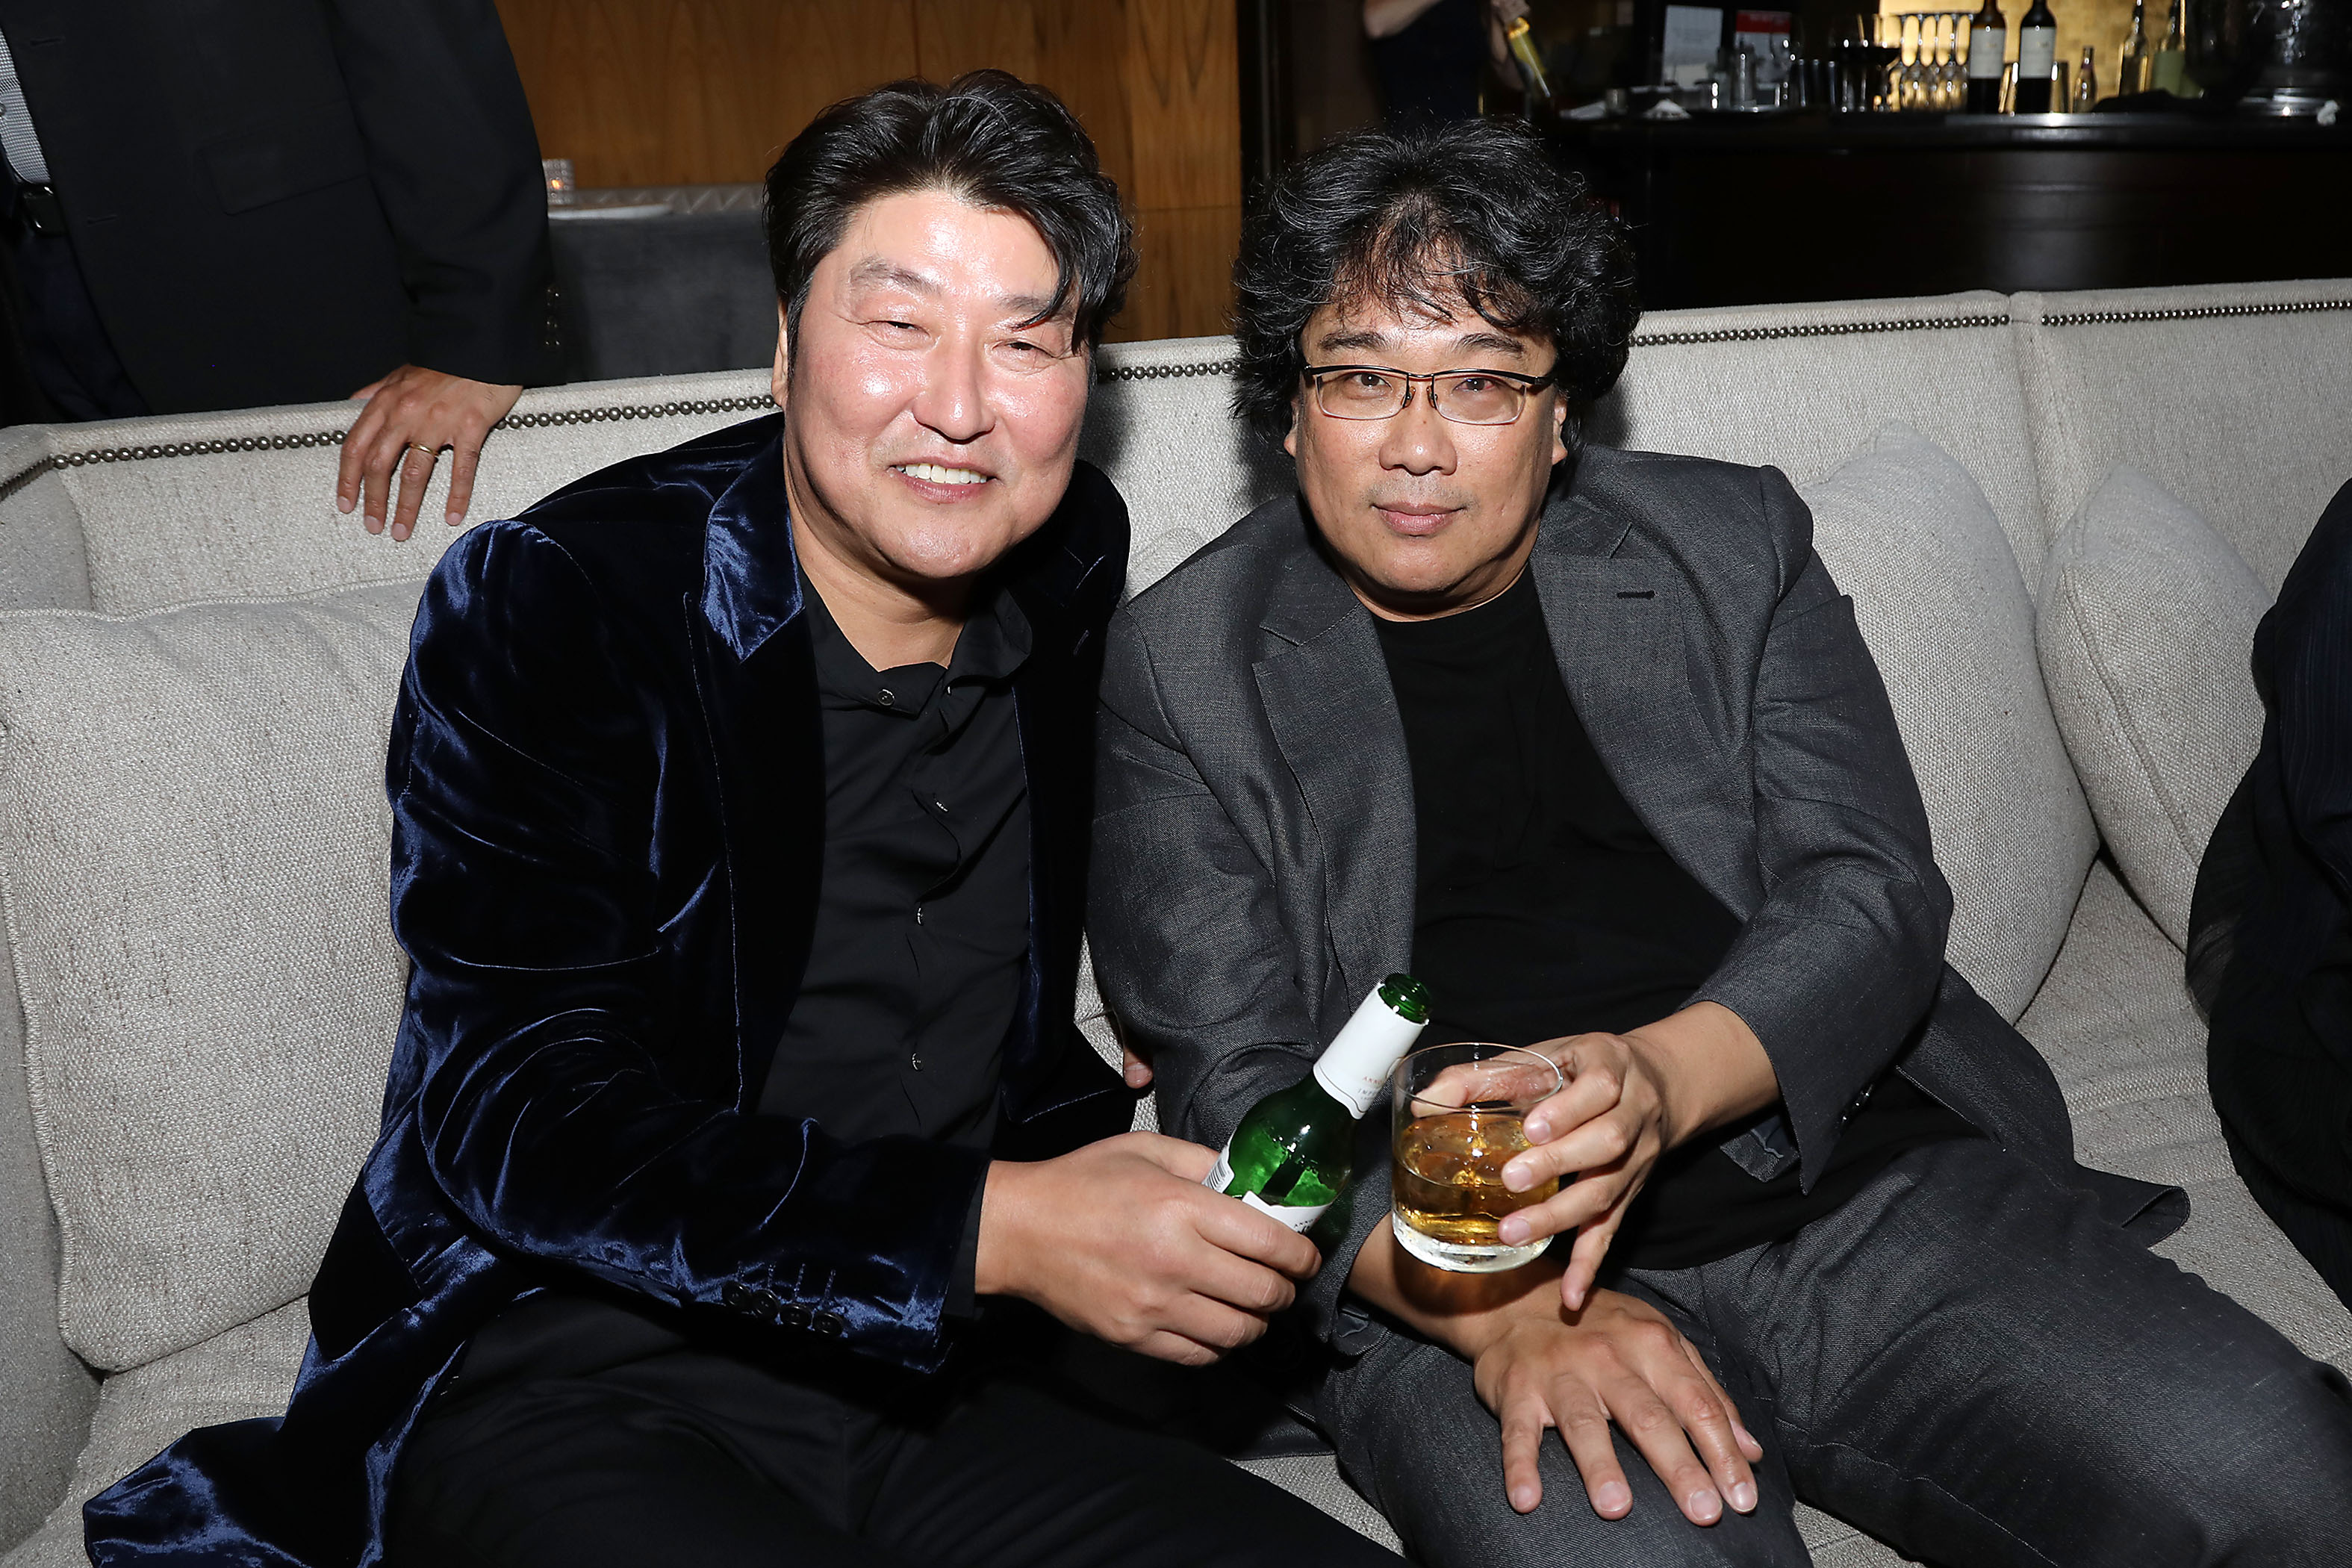 Song Kang Ho and Bong Joon Ho (Director)NEON's 'PARASITE' premiere, Afterparty, 57th New York Film Festival, USA - 08 Oct 2019